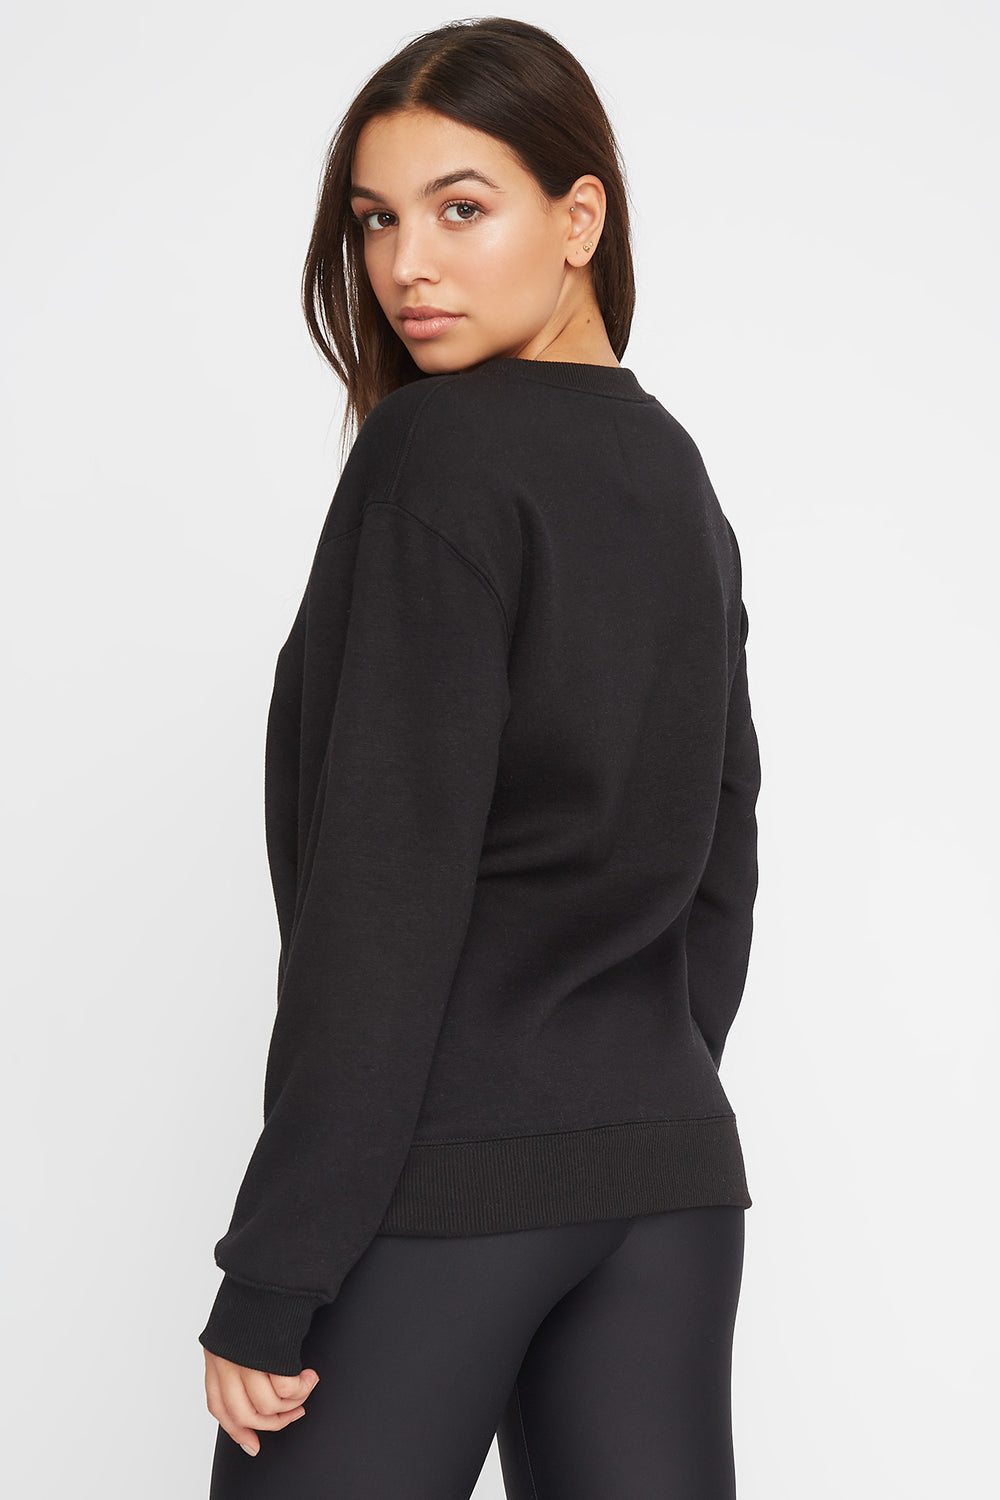 Soft Boyfriend Crewneck Sweater Black